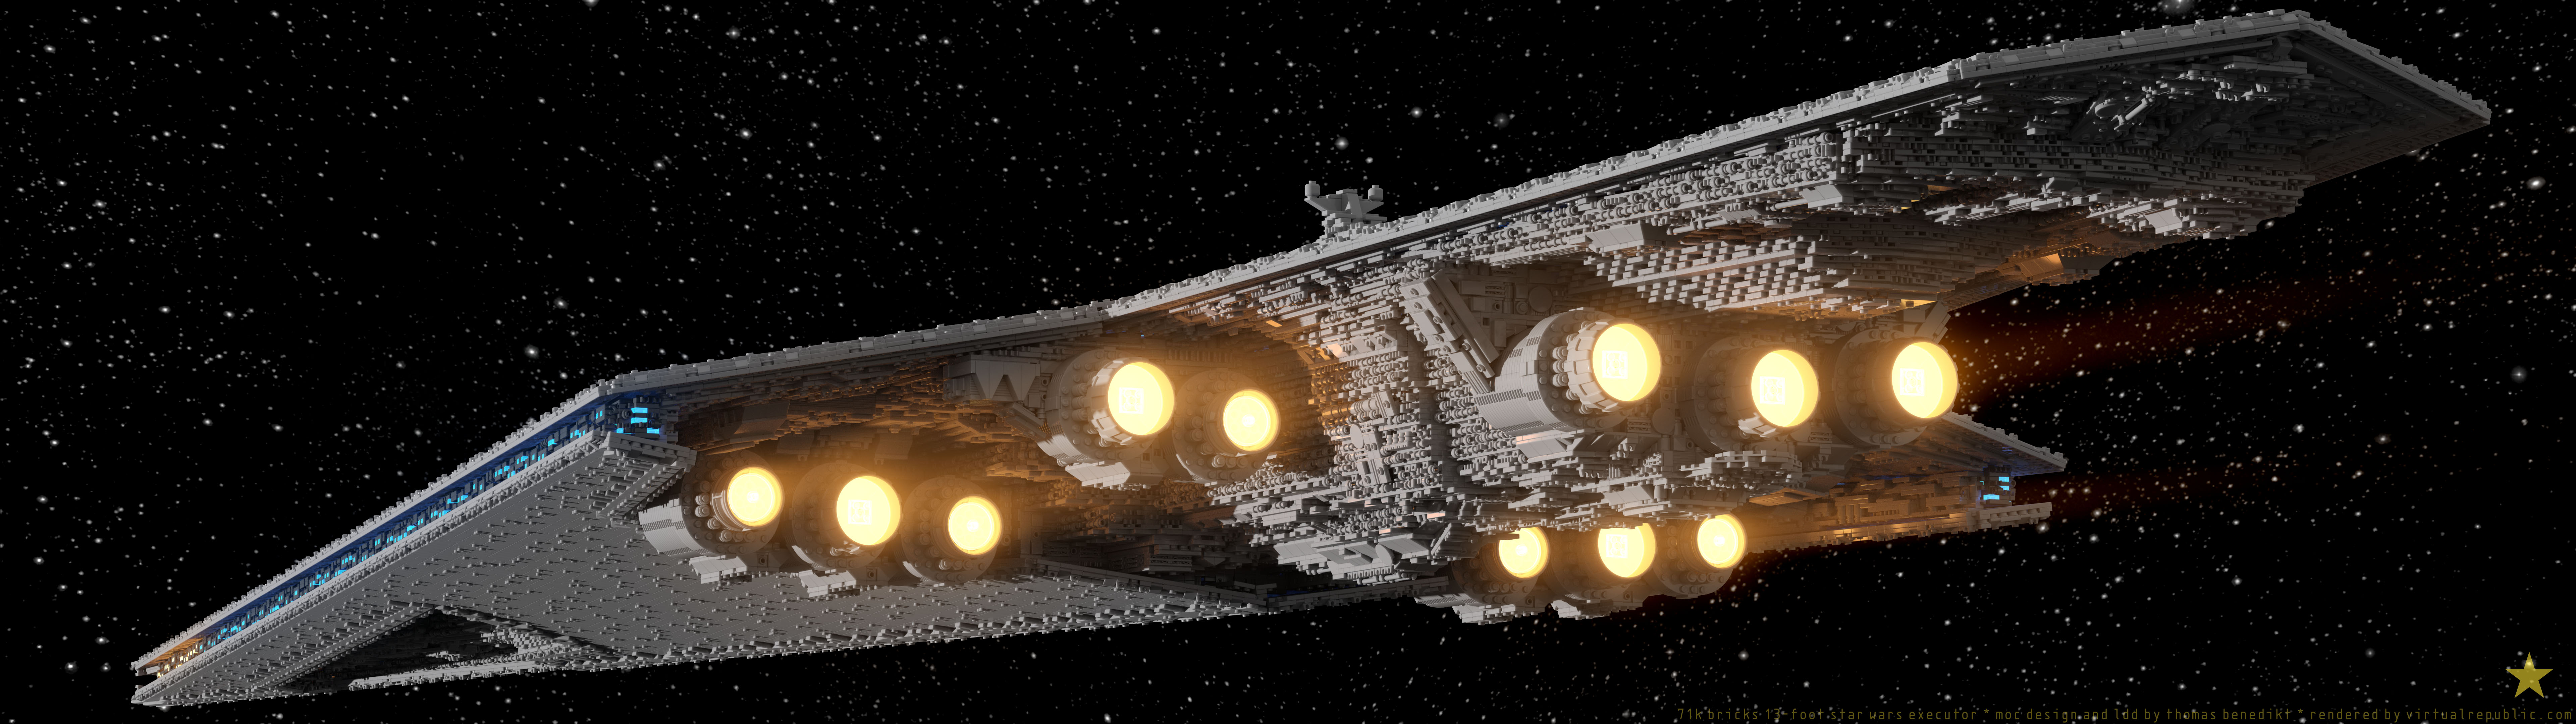 RB0009_Super_Star_Destroyer_v08_CamH_8K_